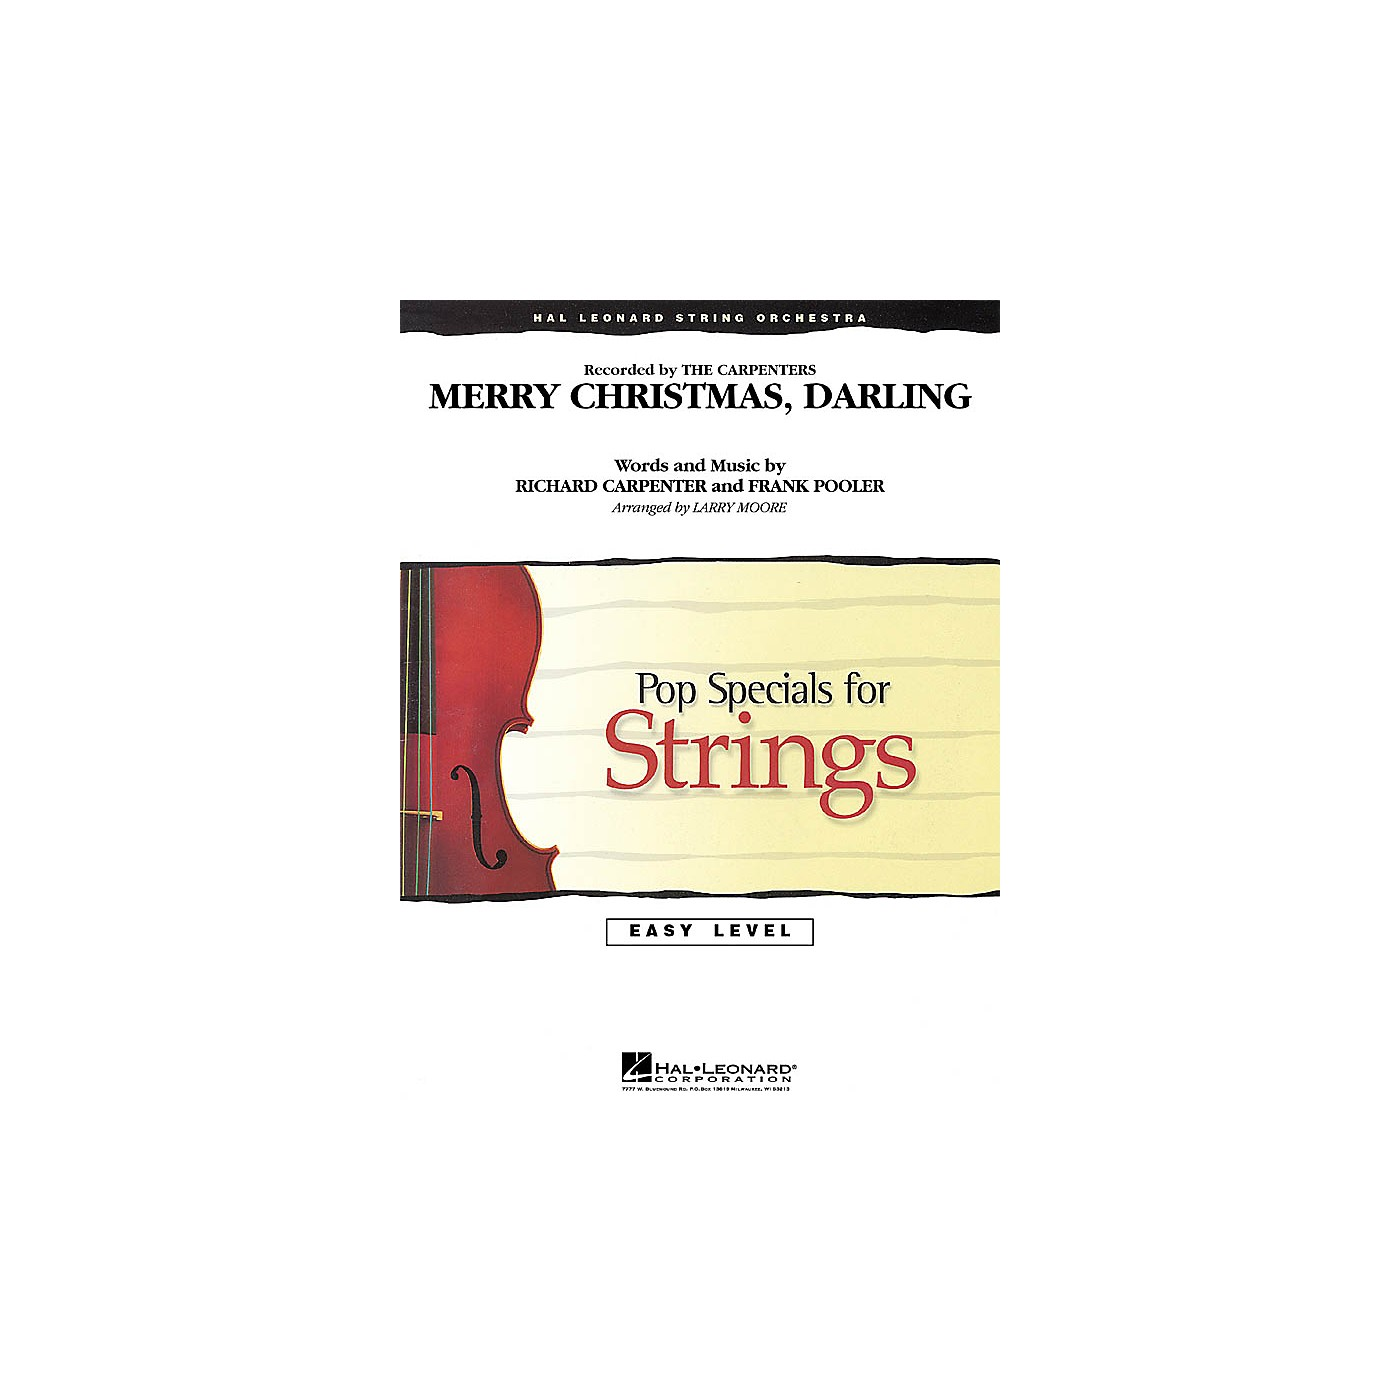 Hal Leonard Merry Christmas, Darling Easy Pop Specials For Strings Series by The Carpenters Arranged by Larry Moore thumbnail